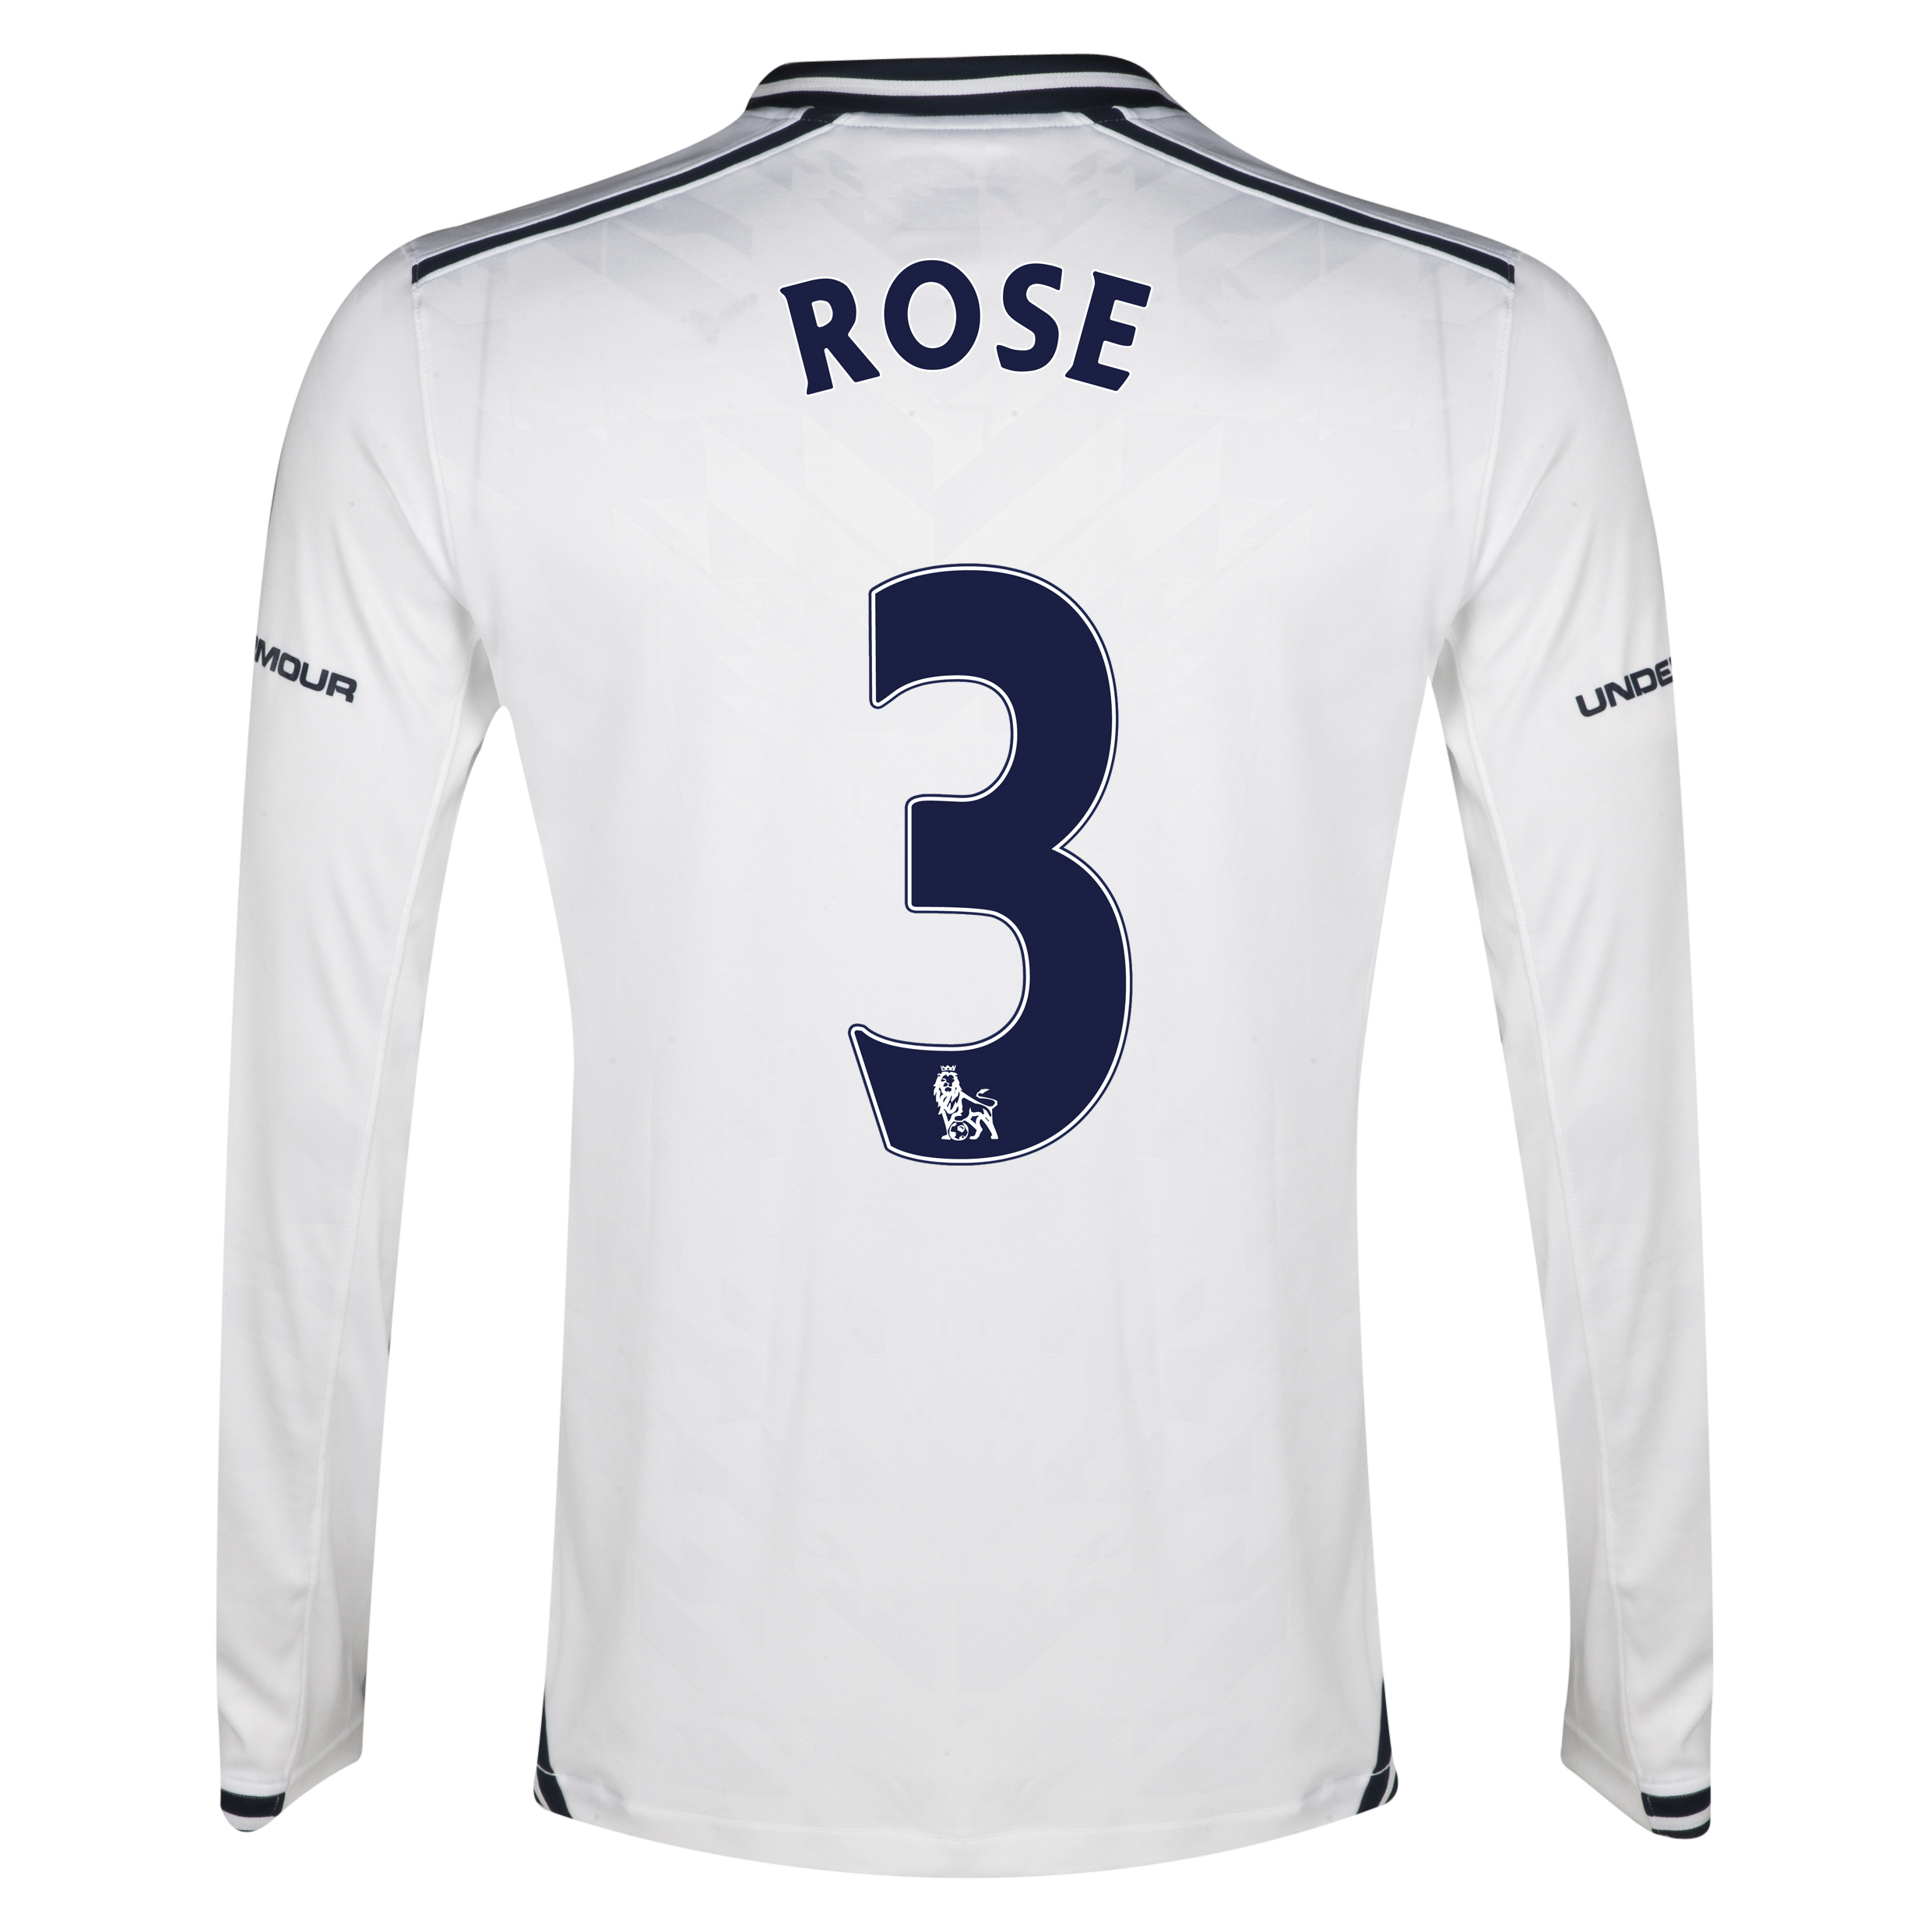 Tottenham Hotspur Home Shirt 2013/14 - Long Sleeve with Rose 3 printing